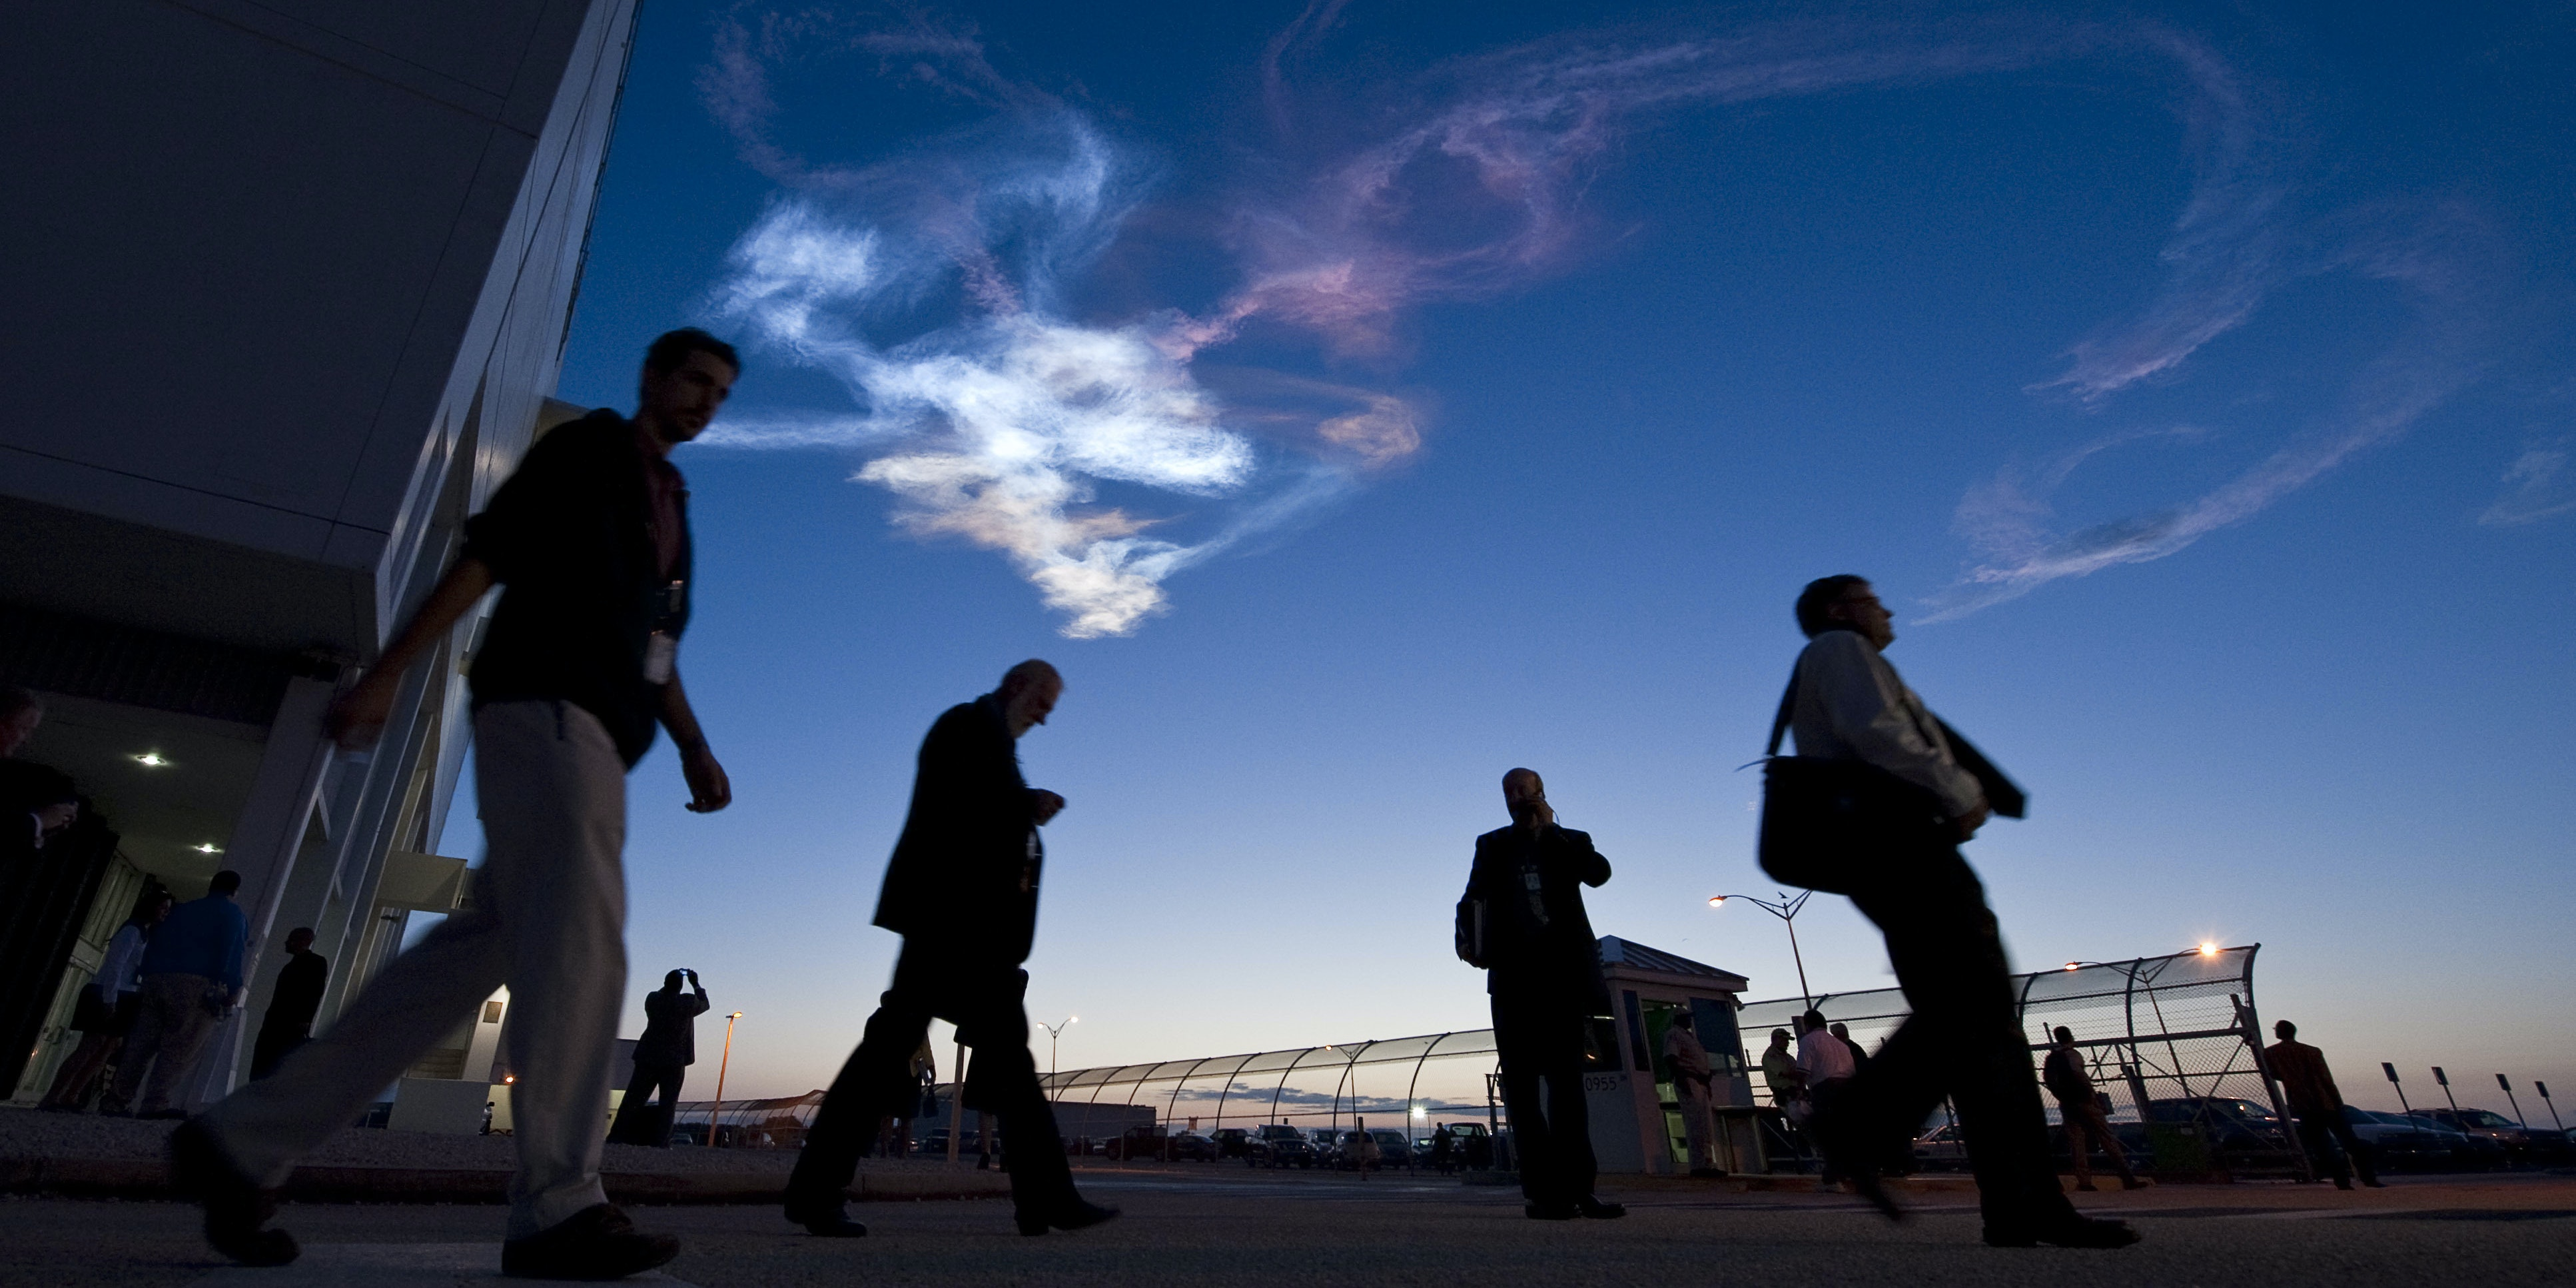 CAPE CANAVERAL, FL - APRIL 5: In this handout image provided by NASA, contrails are seen as workers leave the Launch Control Center after the launch of the space shuttle Discovery and the start of the STS-131 mission at NASA Kennedy Space Center in Cape Canaveral, Fla. on Monday April 5, 2010. Discovery is carrying a multi-purpose logistics module filled with science racks for the laboratories aboard the station. The mission has three planned spacewalks, with work to include replacing an ammonia tank assembly, retrieving a Japanese experiment from the station's exterior, and switching out a rate gyro assembly on the station's truss structure. (Photo by Bill Ingalls/NASA via Getty Images)